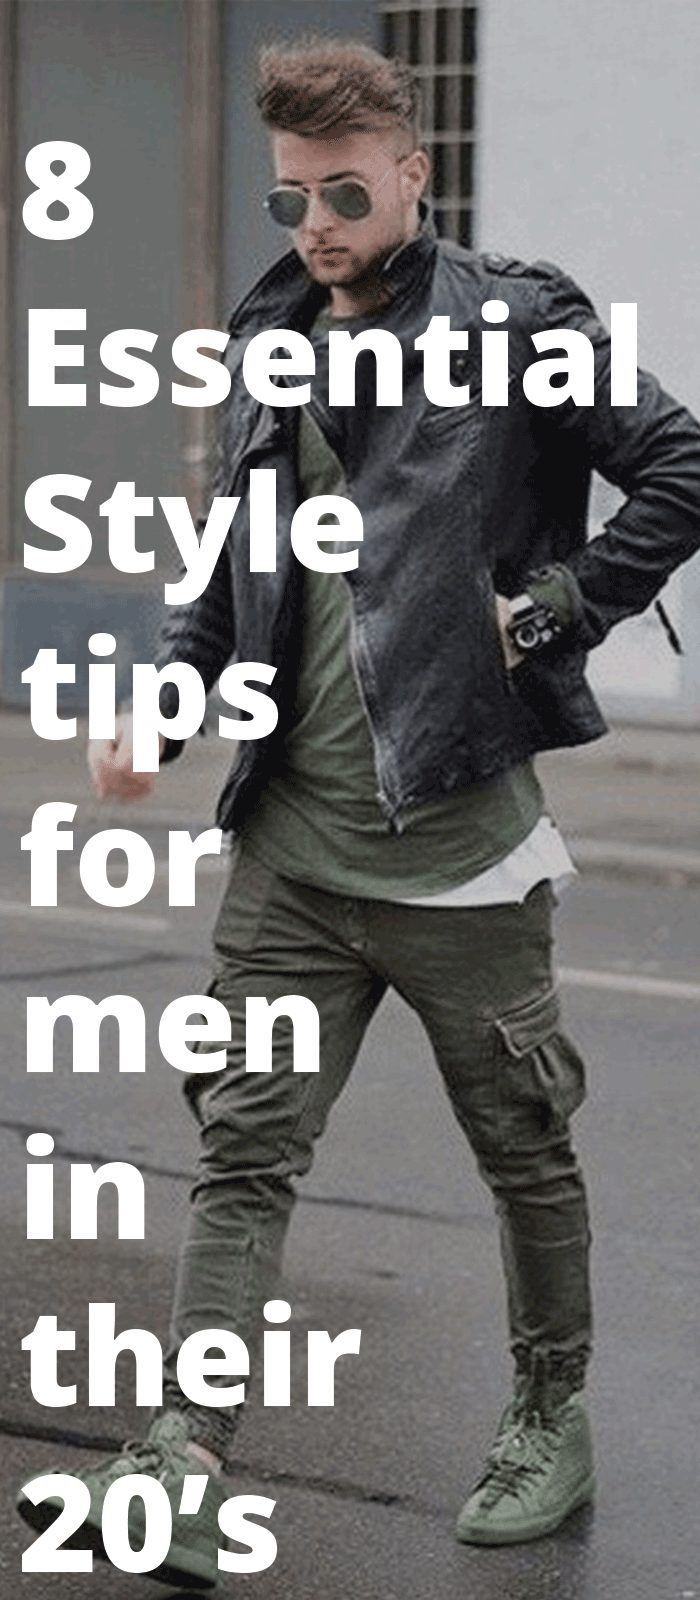 8 Essential Style tips for men in their 20's